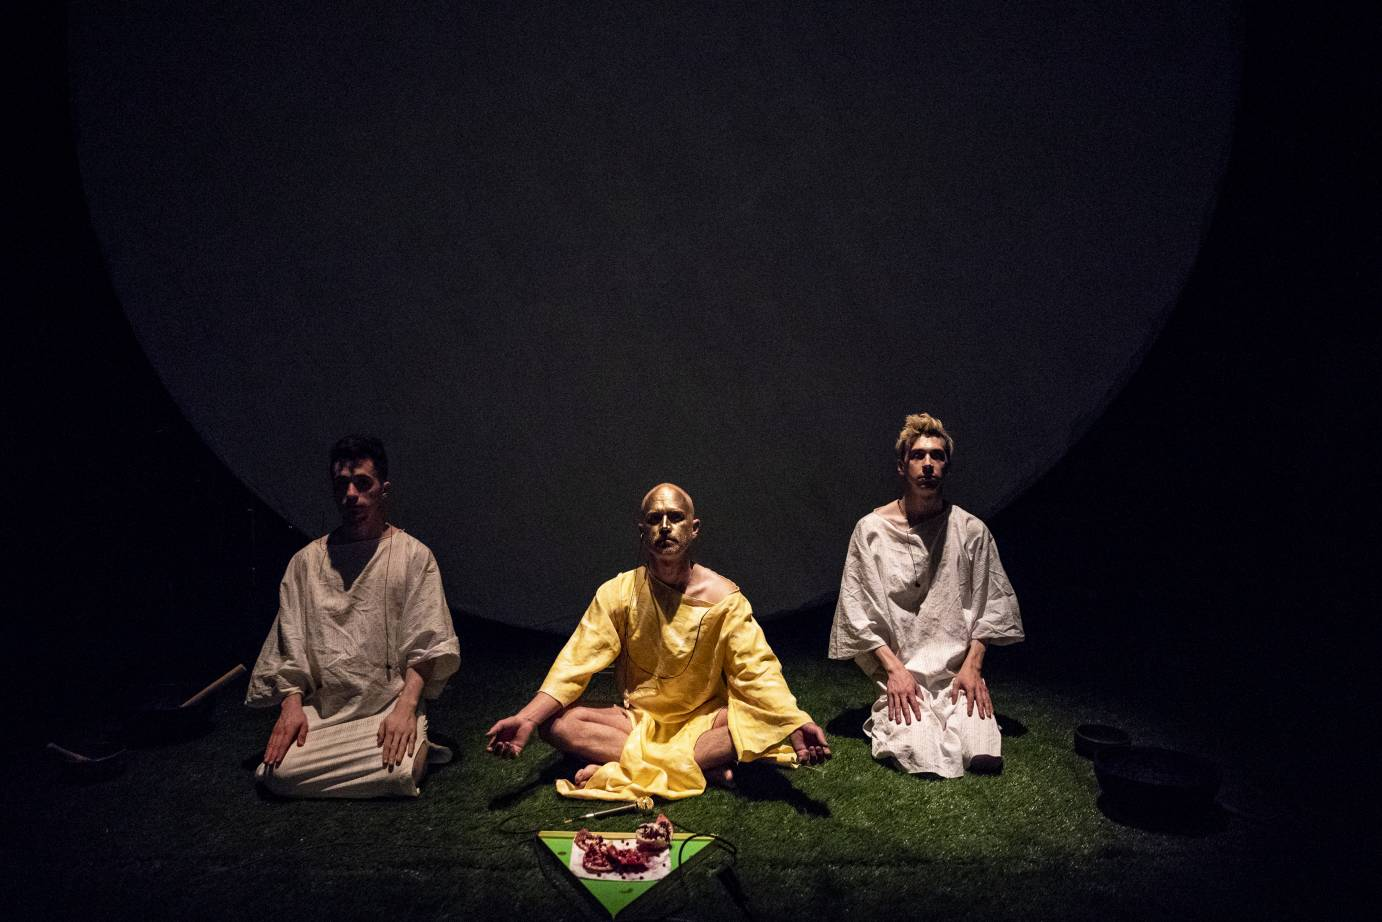 Three individuals sit like yogis behind a microphone and bowl of pomegranates